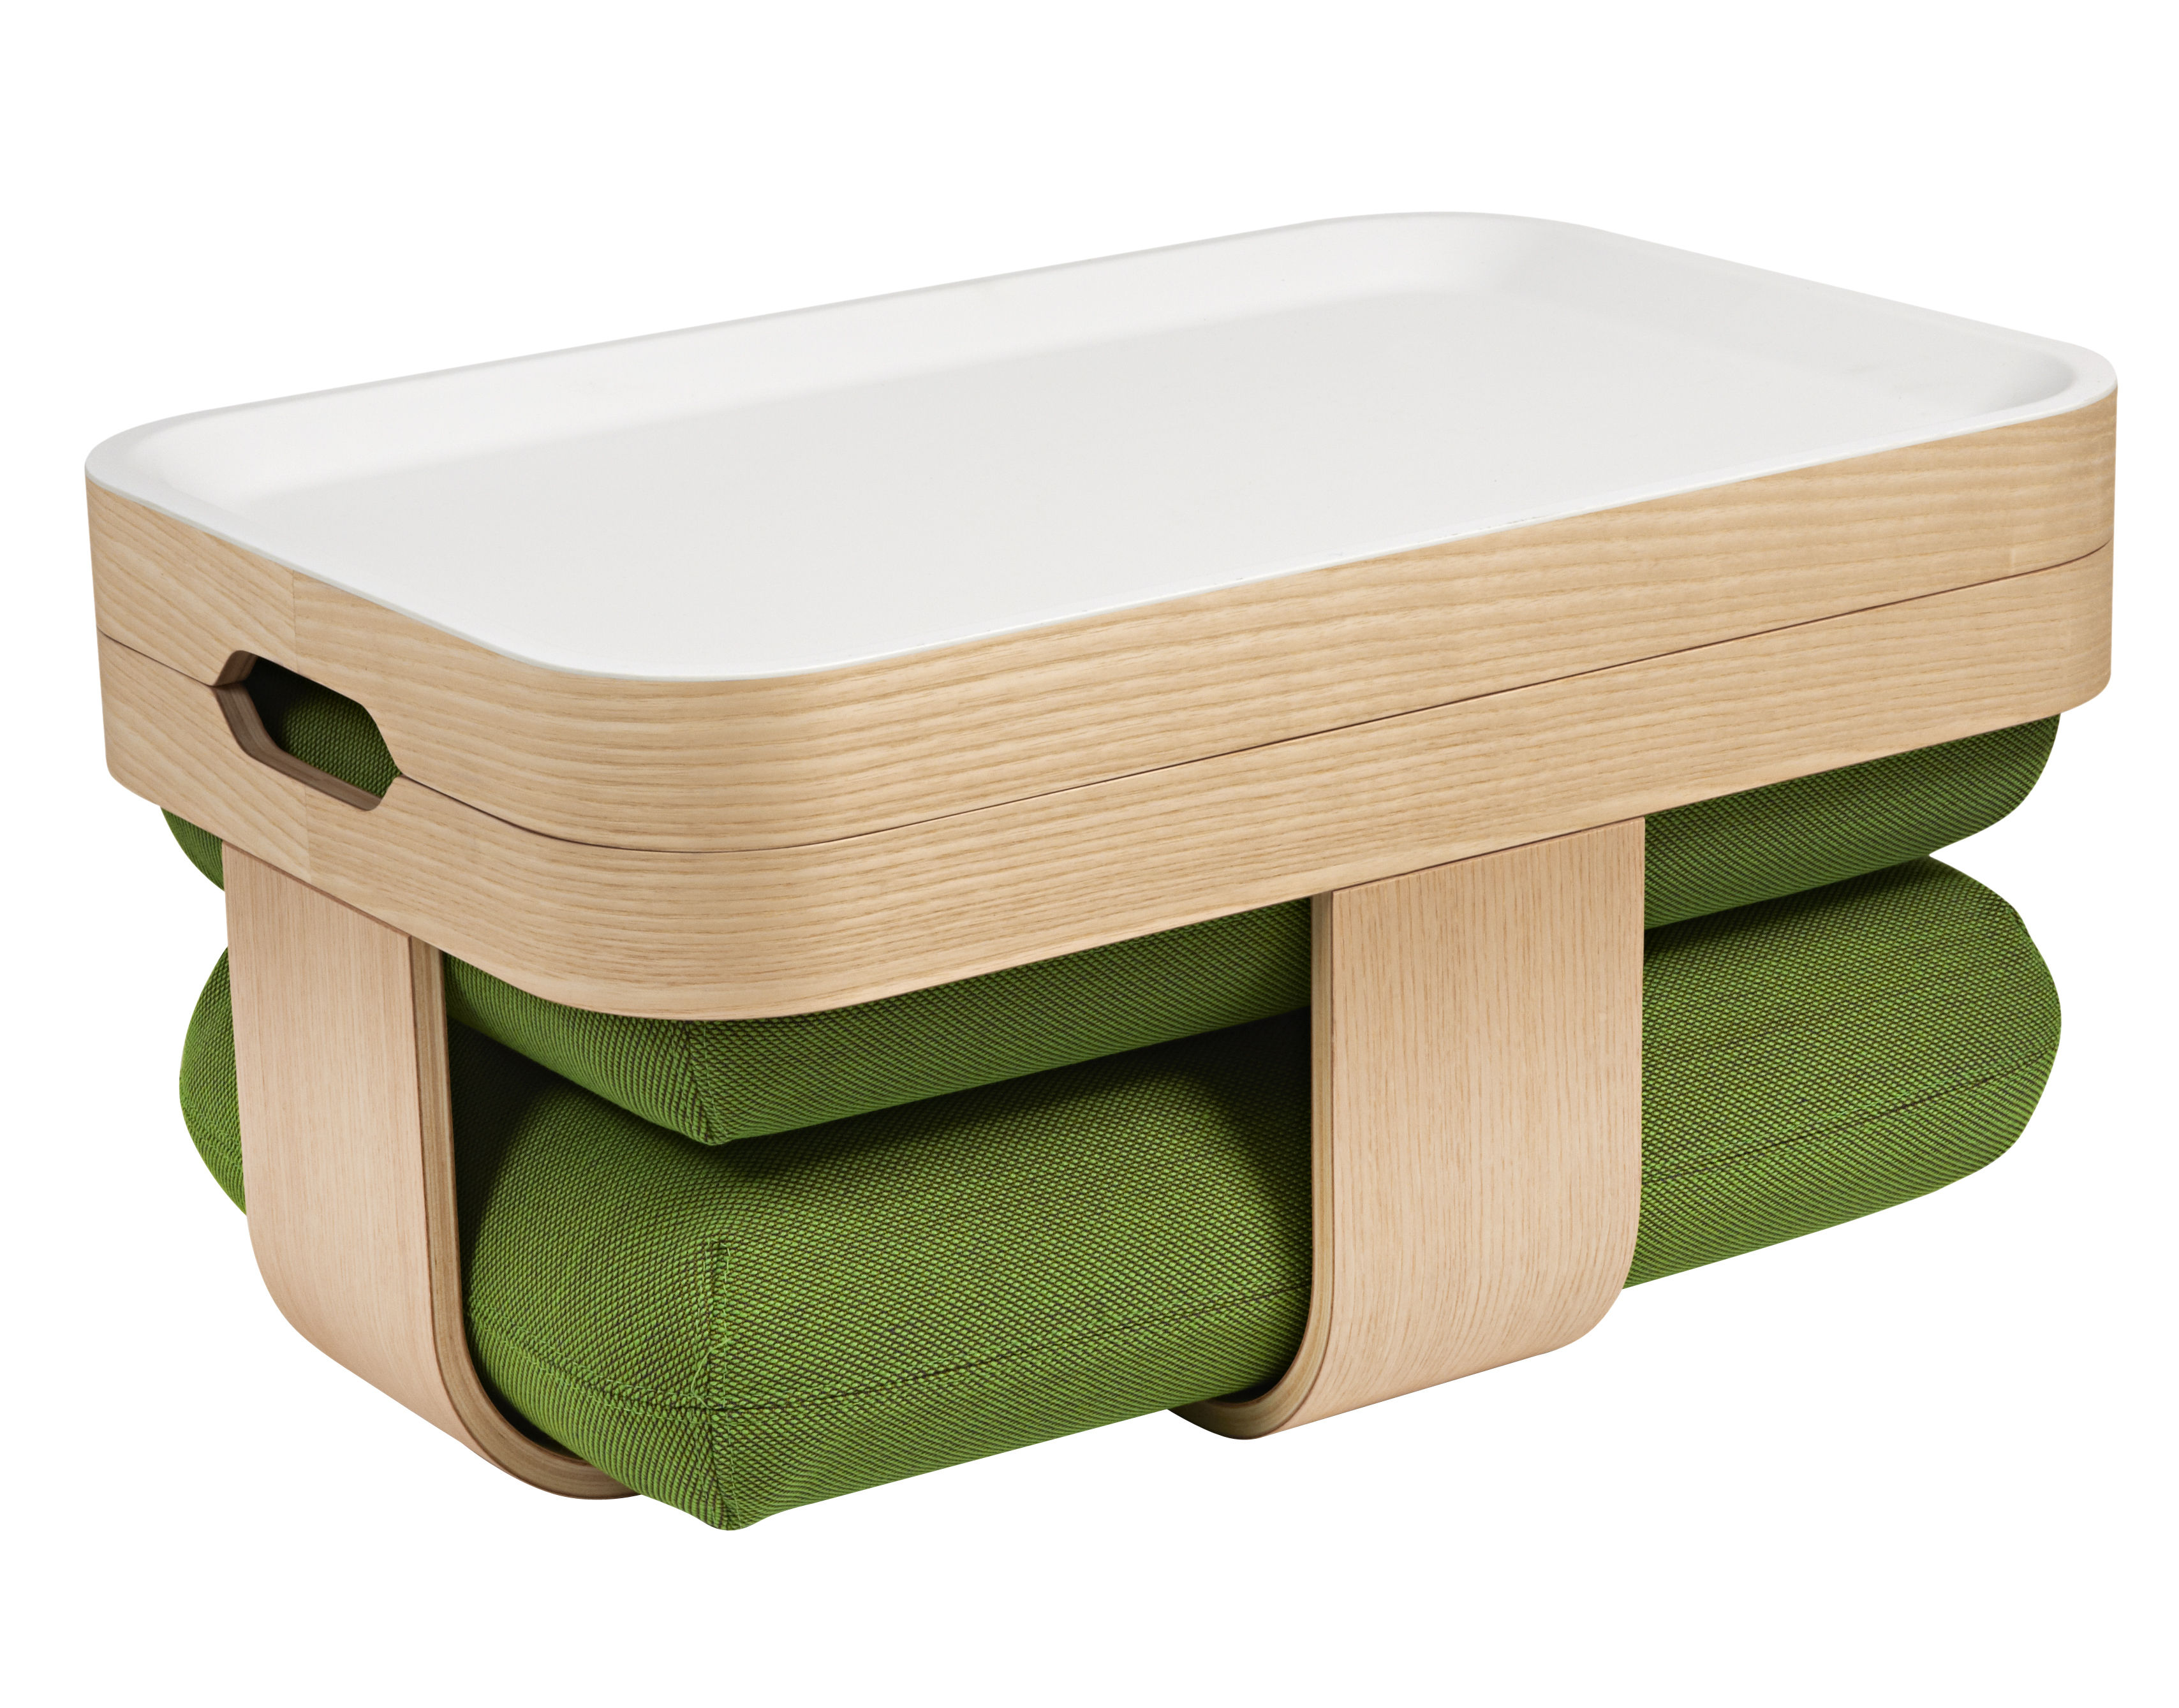 table basse mister t transformable en pouf et repose pieds vert made in design editions by. Black Bedroom Furniture Sets. Home Design Ideas